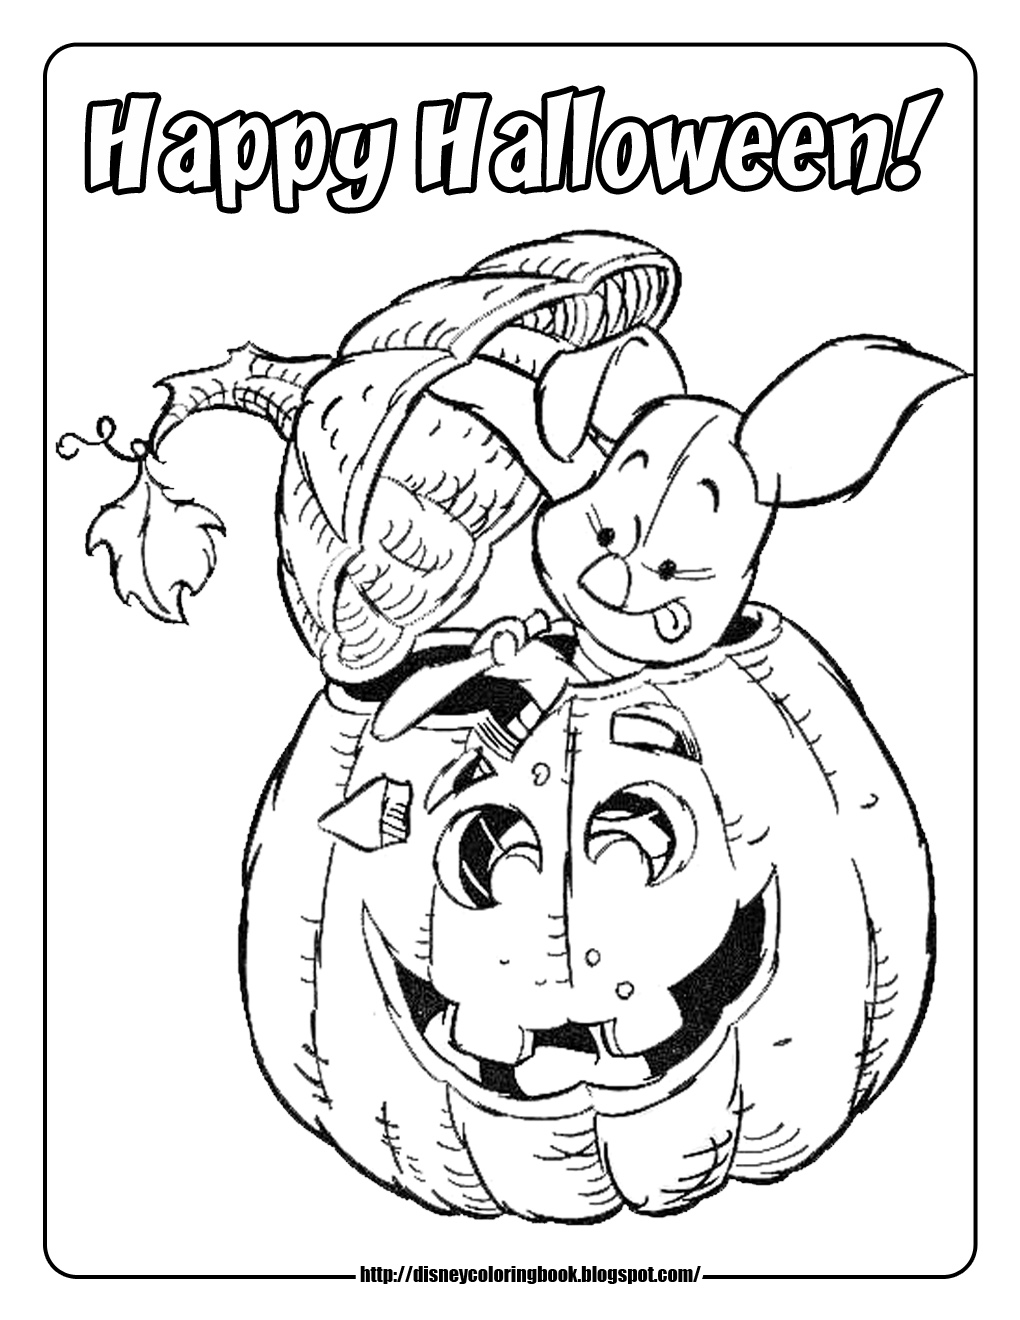 Disney Coloring Pages and Sheets